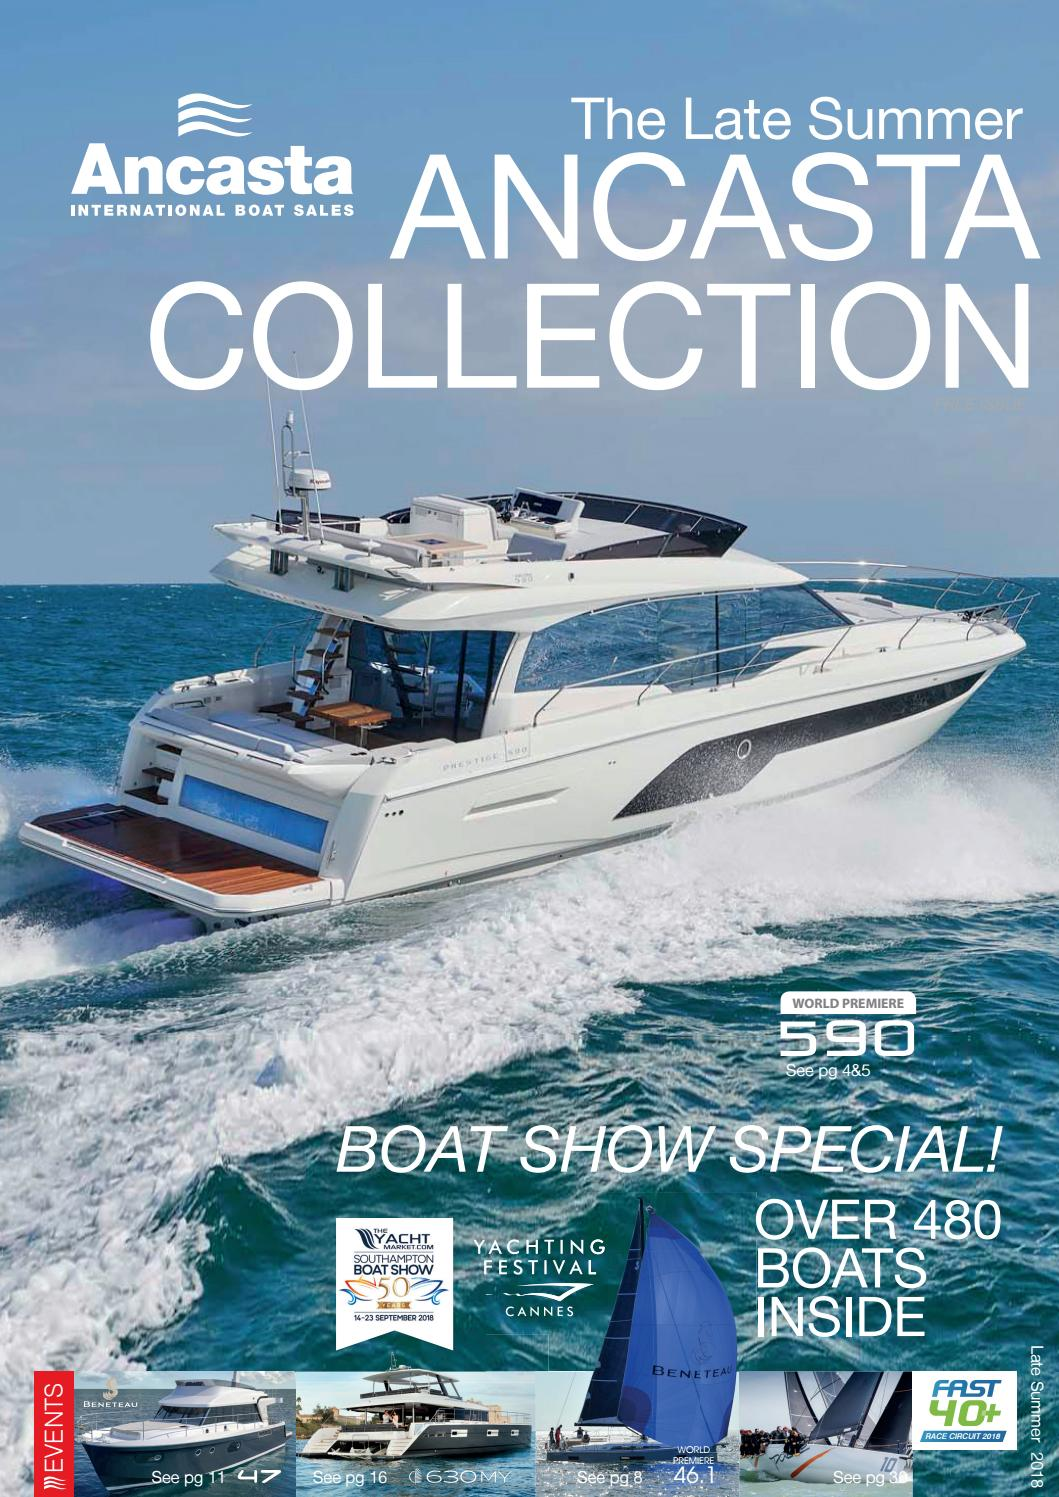 Ancasta Late Summer Collection 2018 by Ancasta International